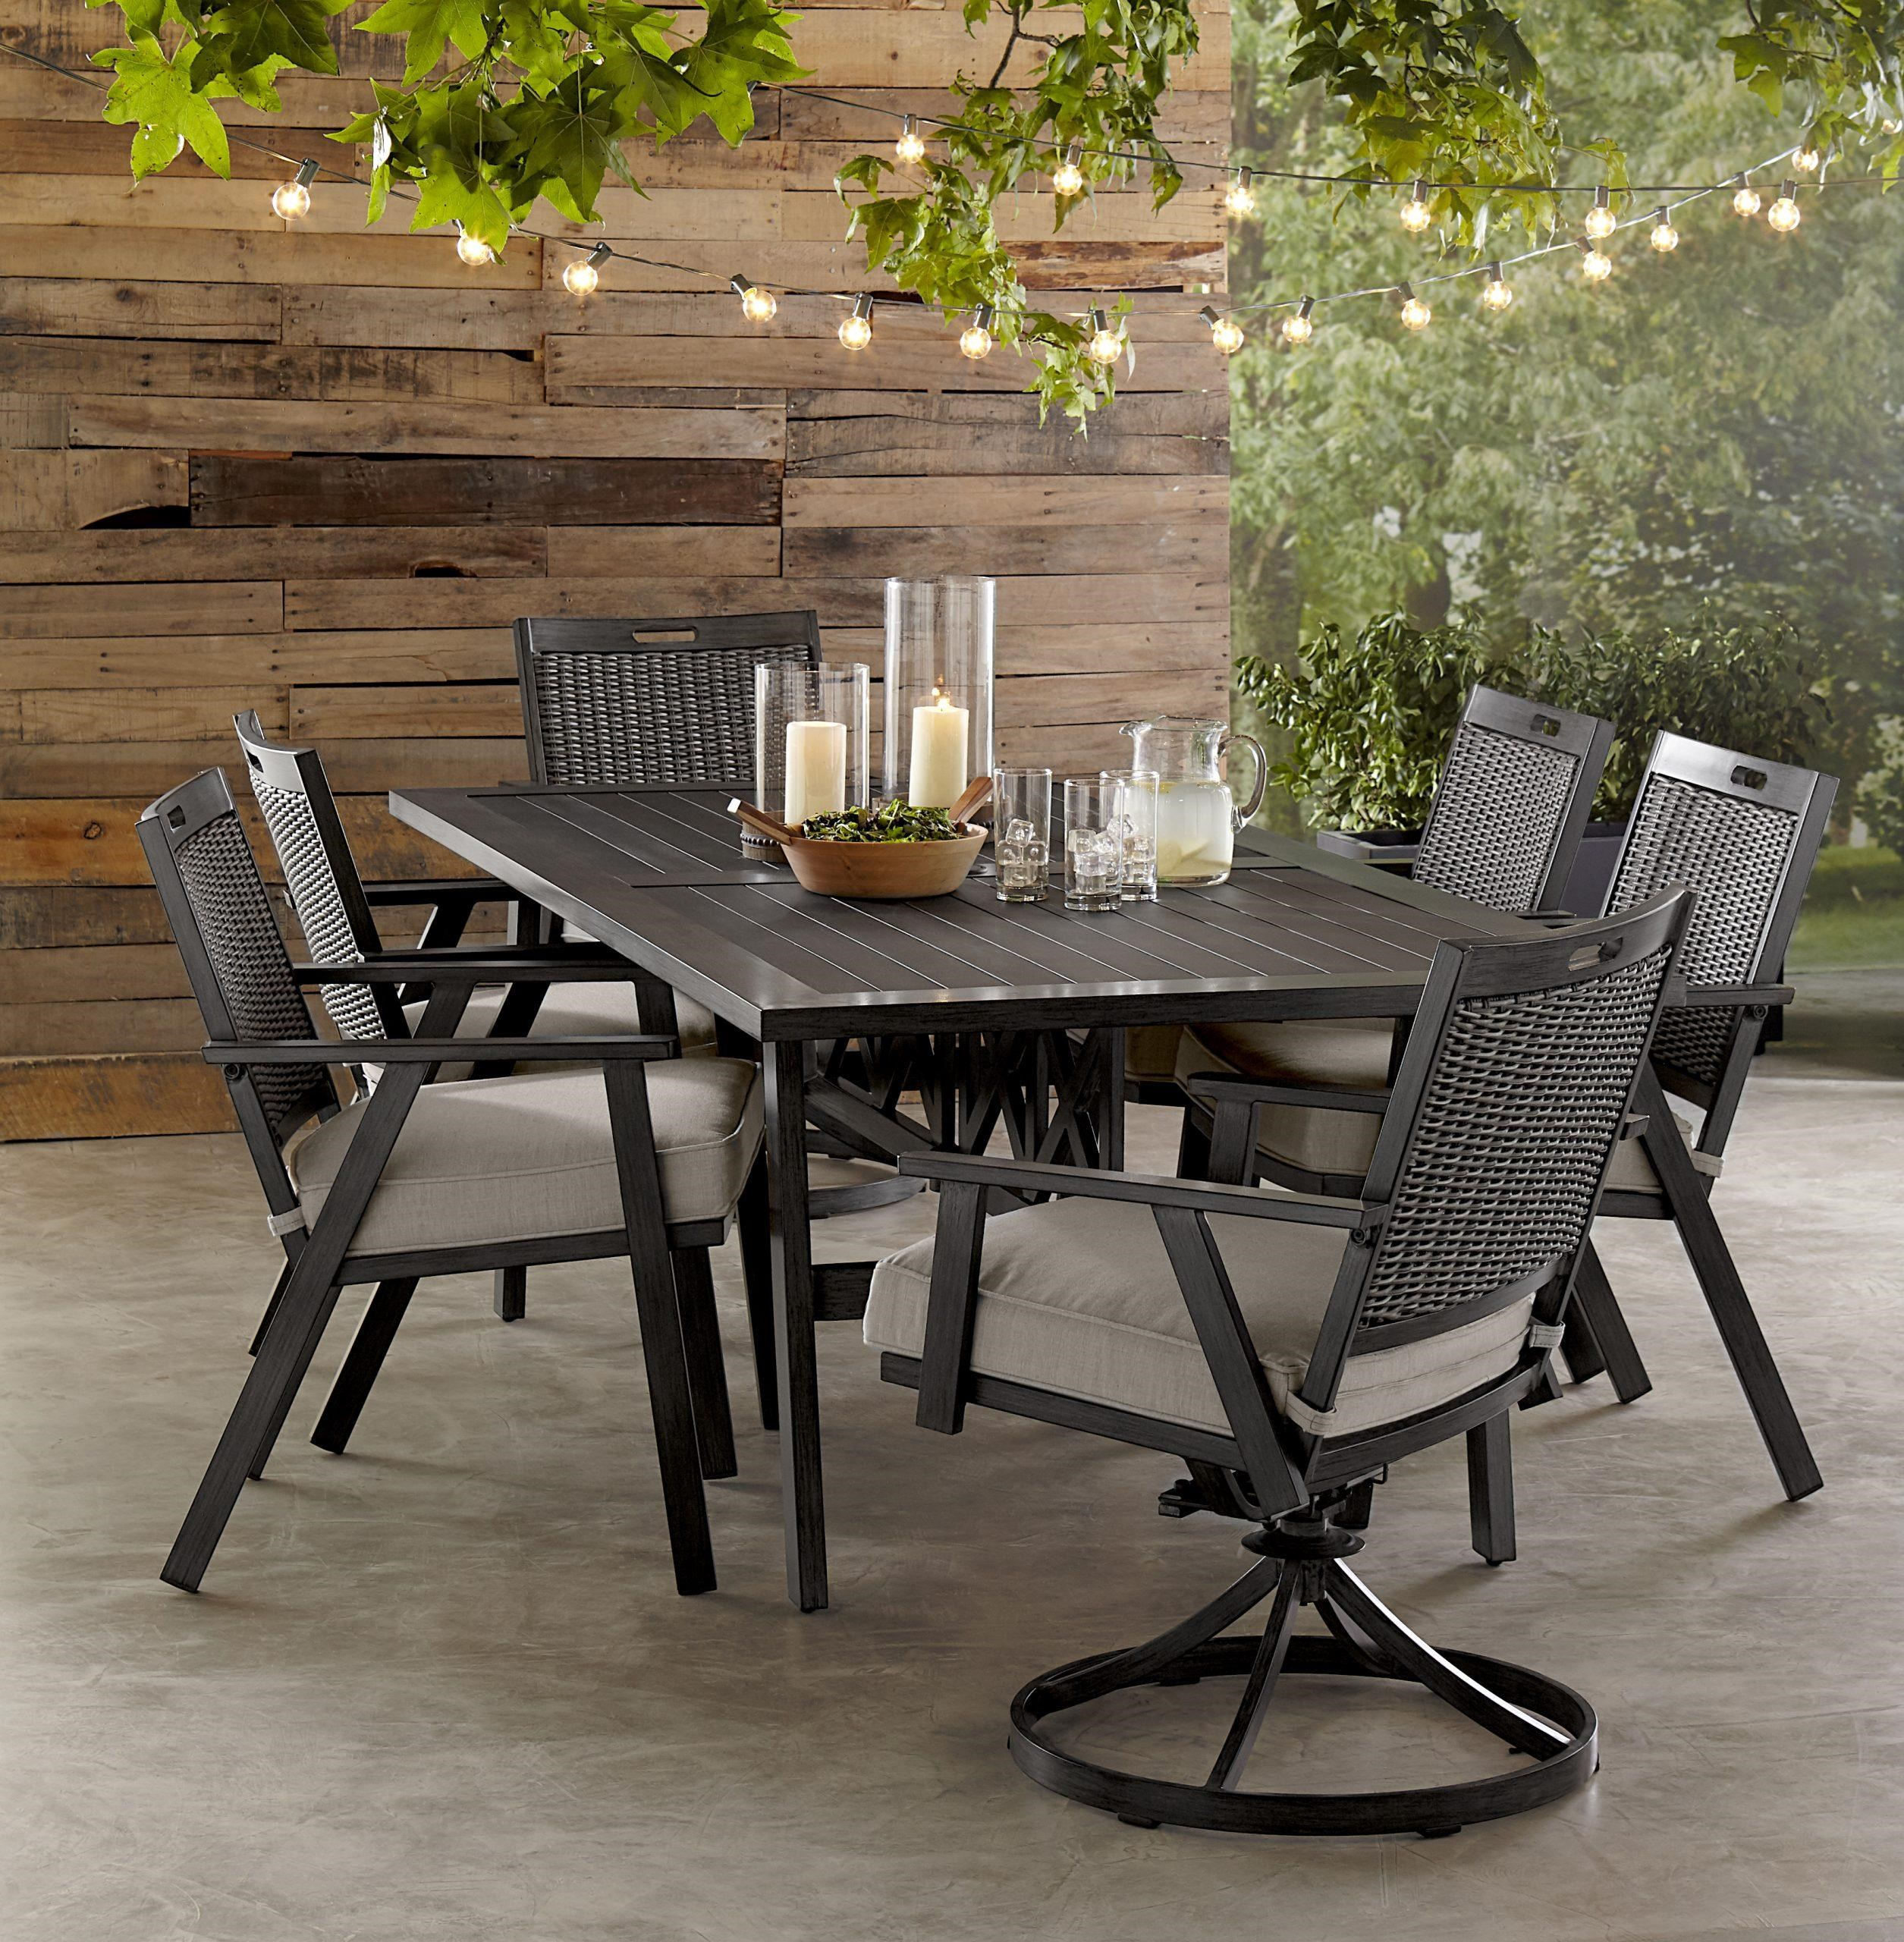 Addison Dining Table, 4 Chairs, 2 Swivel Chair by Apricity Outdoor at Johnny Janosik